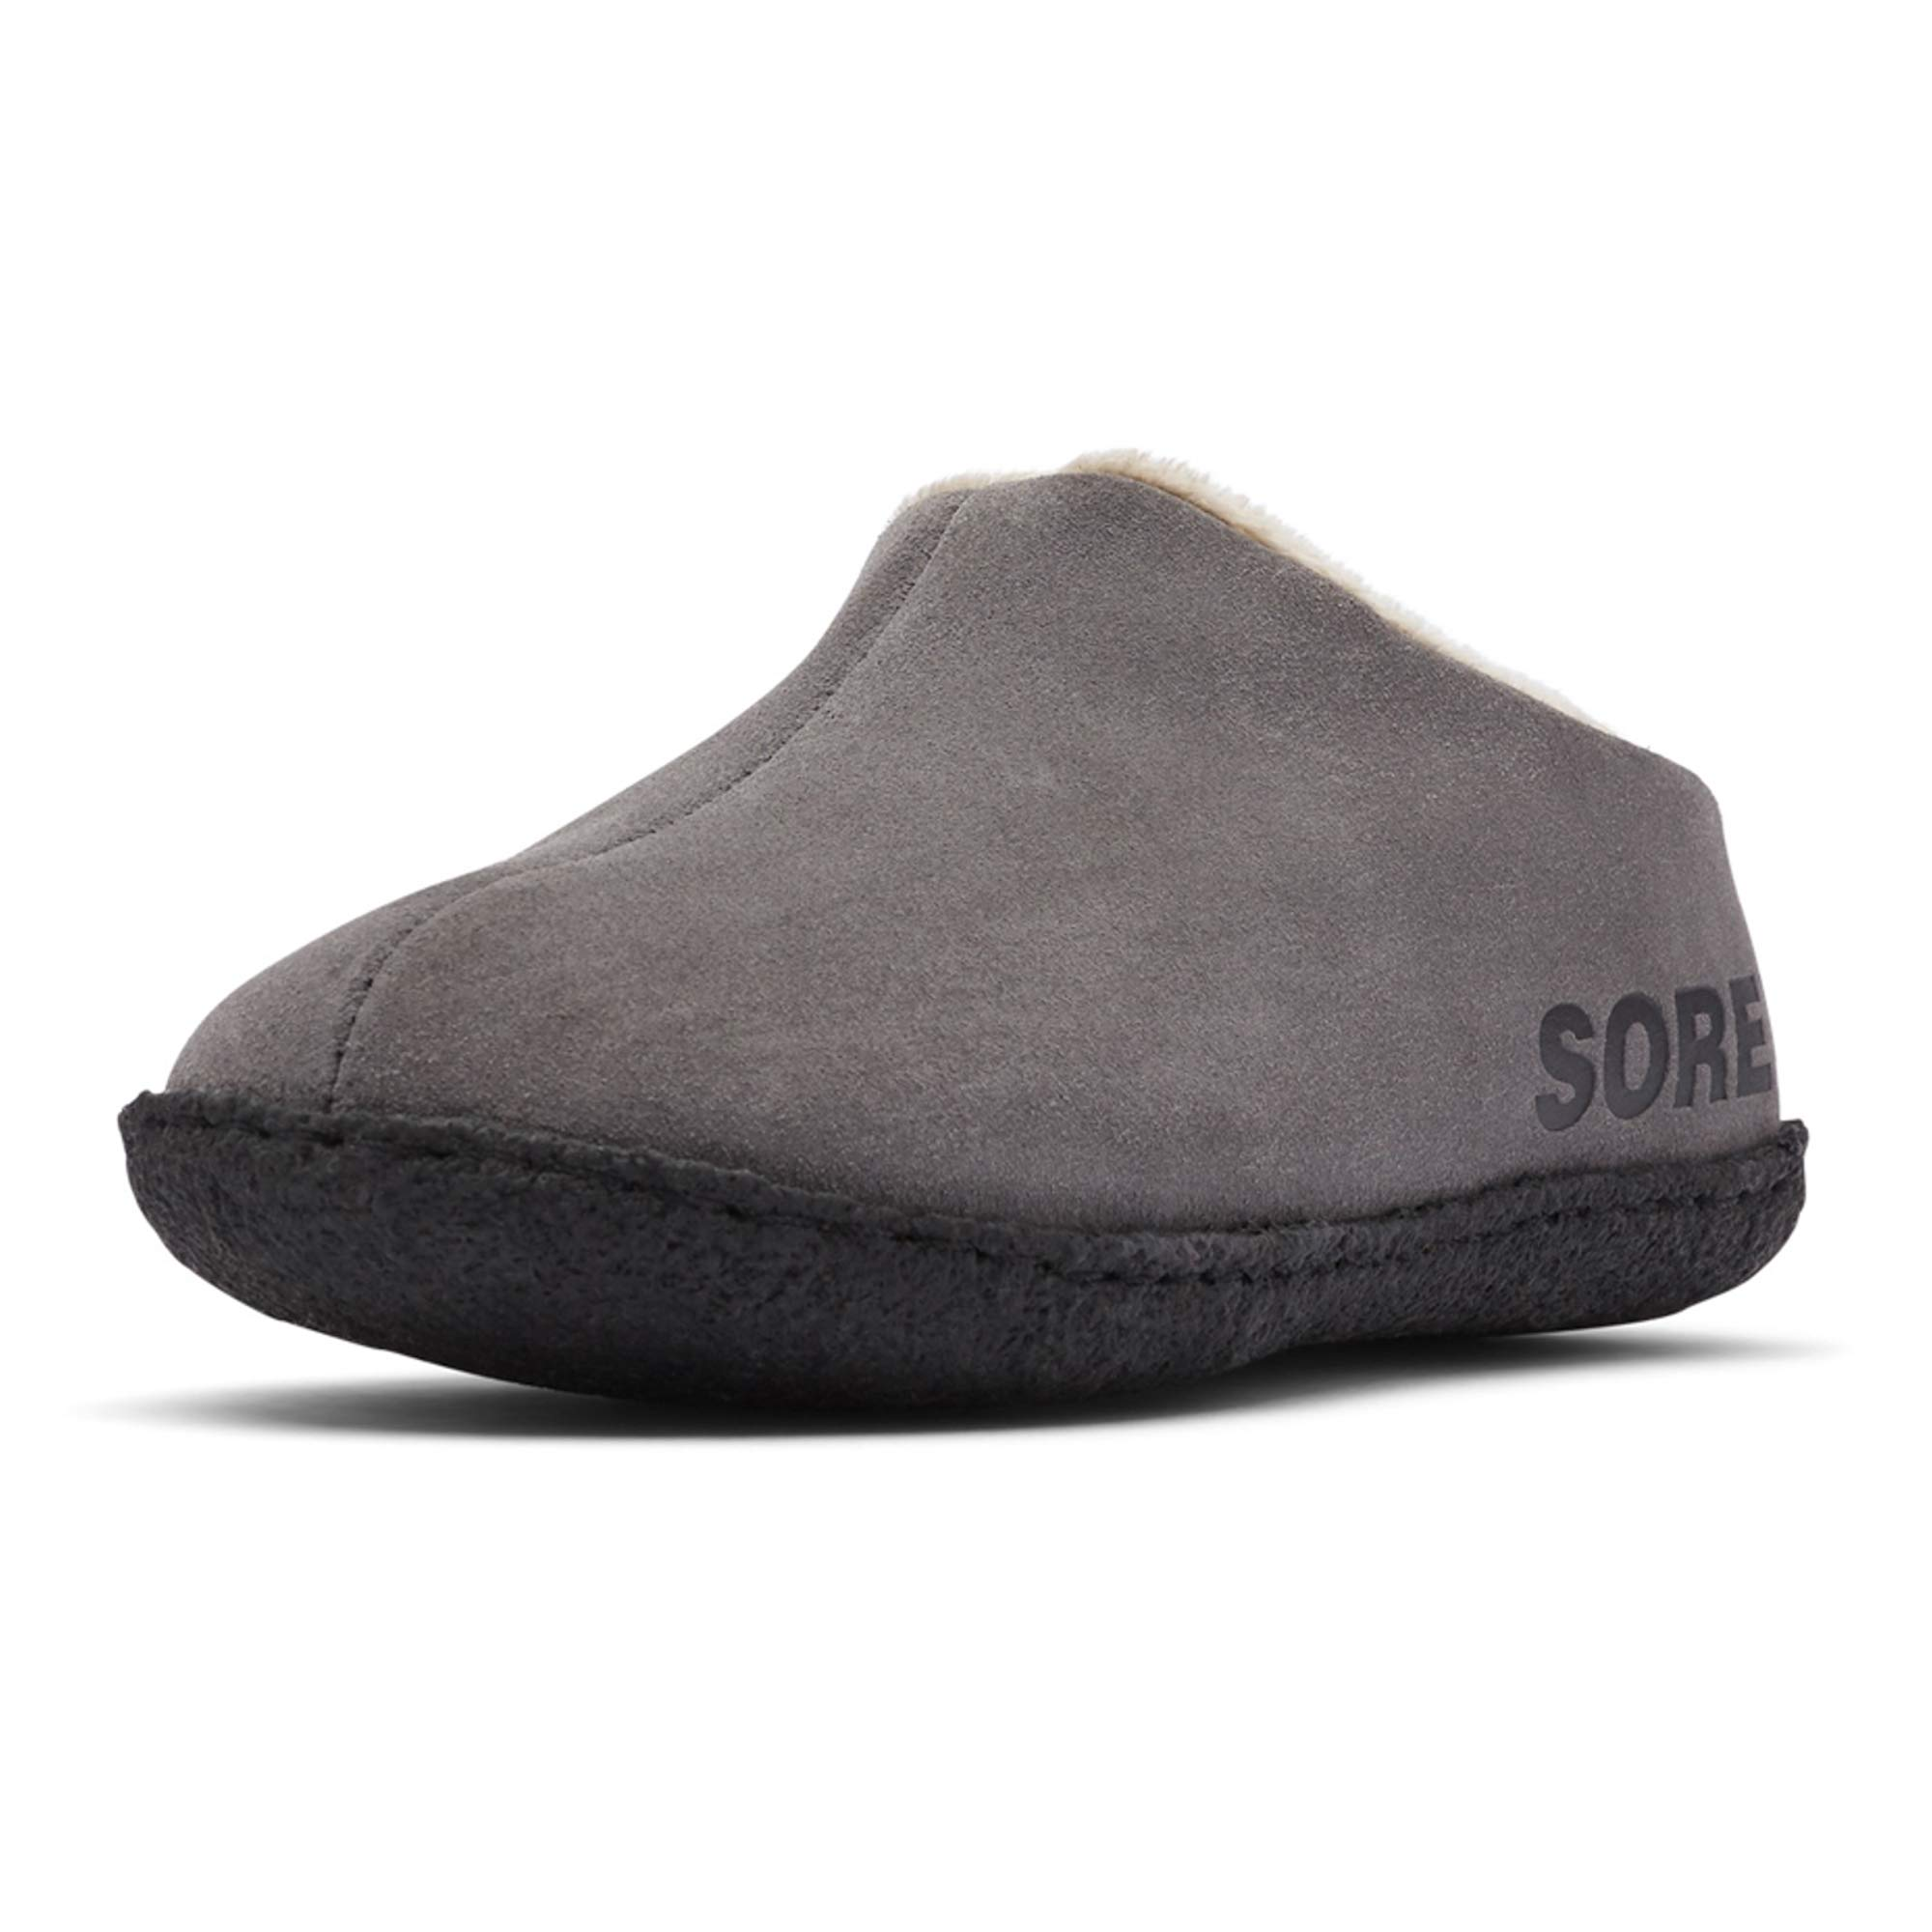 Sorel - Youth Falcon Ridge II Suede Slippers with Fleece Lining for Kids, Buffalo/Delta, 7 M US